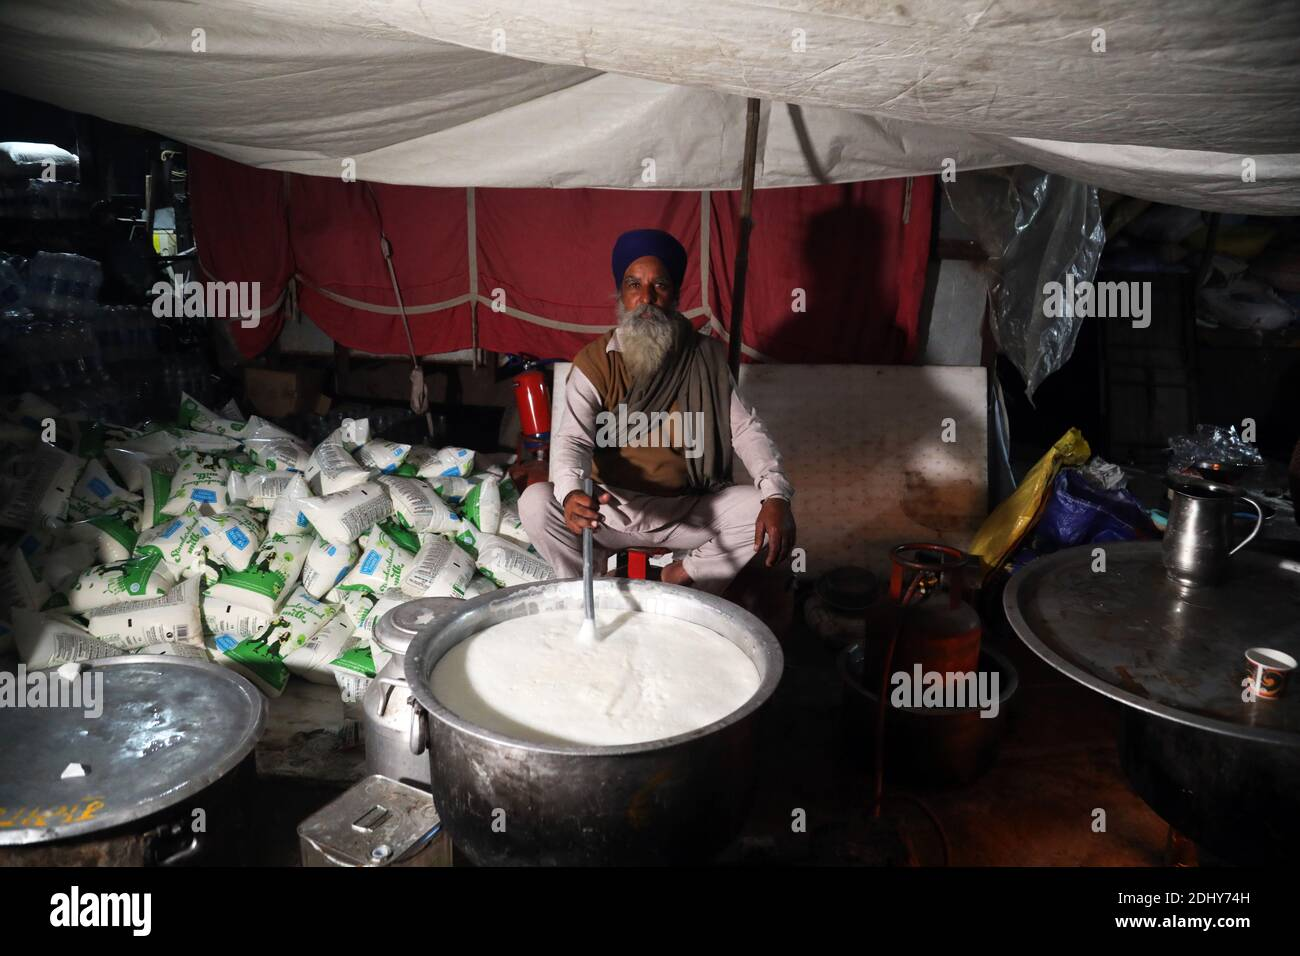 A protester preparing milk for colleagues in a community kitchen during the demonstration.Thousands of farmers from Punjab, Haryana and Uttar Pradesh blocked Singhu border (Delhi-Haryana Highway), Ghazipur border (Delhi-Meerut Highway), Tikri border and Gurugram Border agitating for the 17 days. Against the Centre's new farm reform laws.  Indian Union Minister of Agriculture and Farmers Welfare, Narendra Singh Tomar appeals to farmers to end their protest and work with the government. Stock Photo